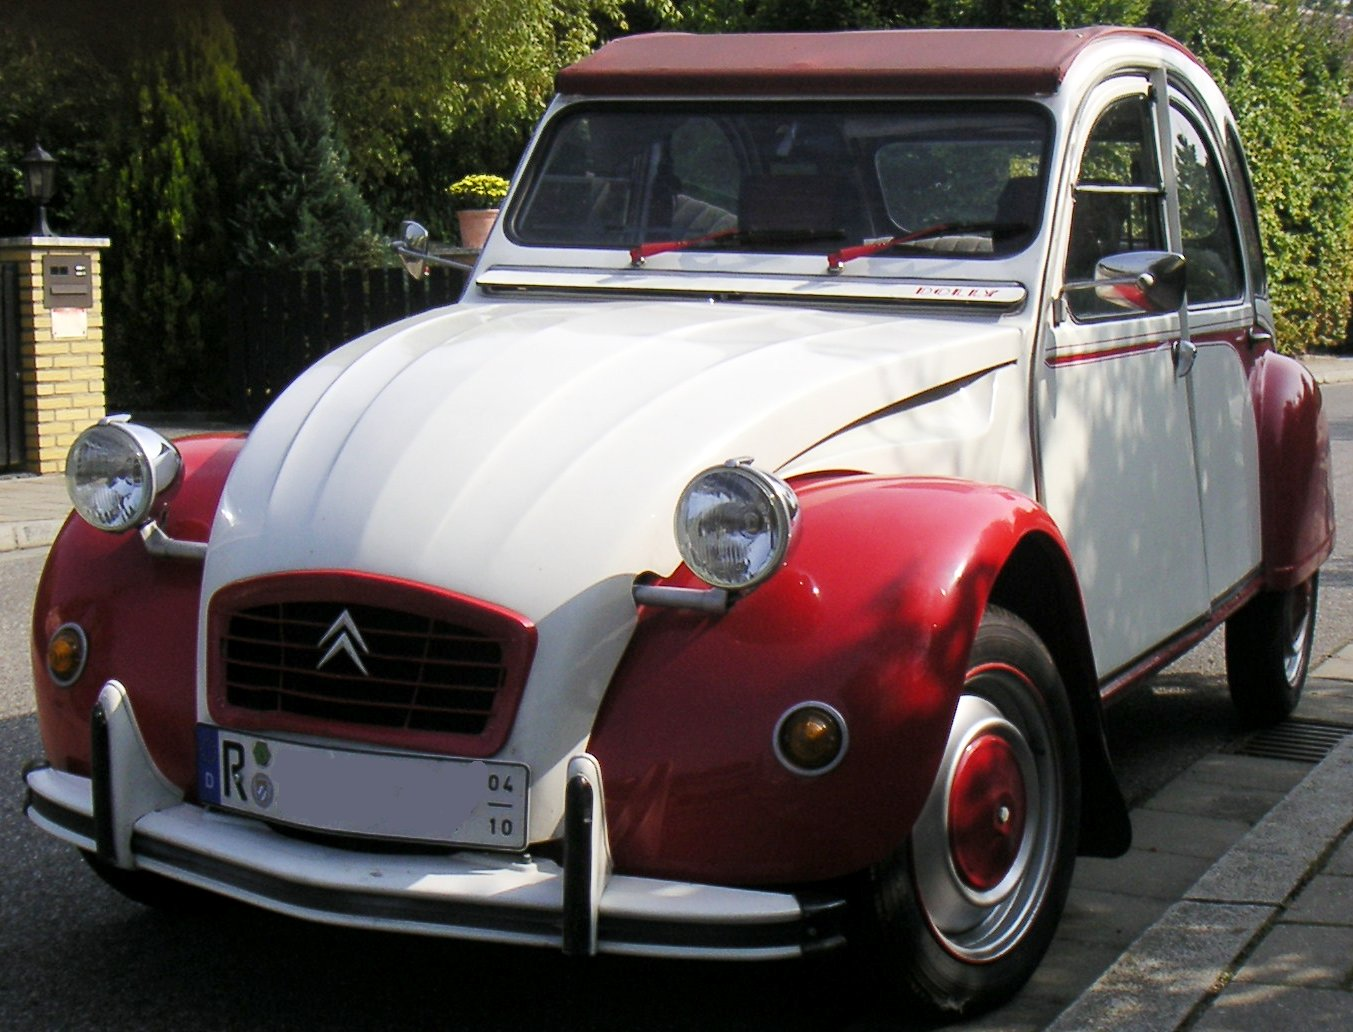 Citro?n 2CV Dolly. Scoty6776